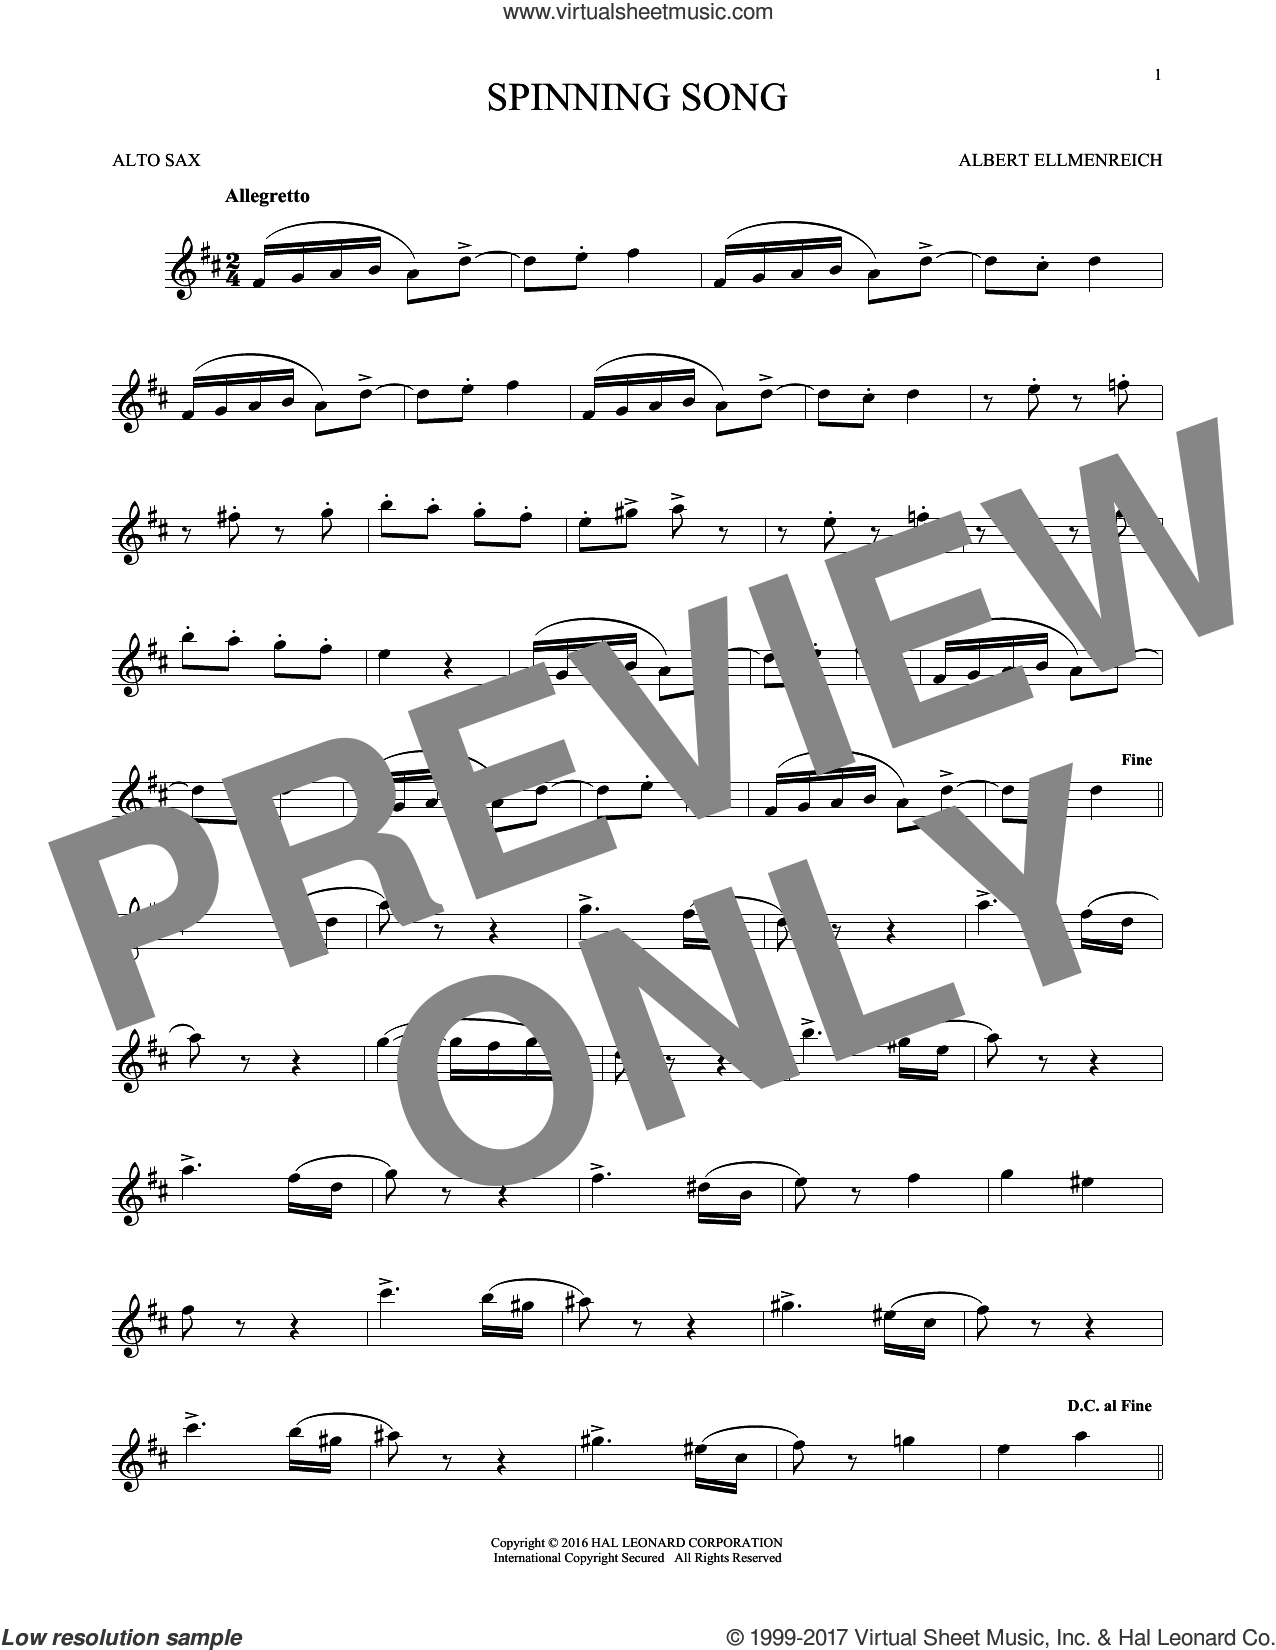 Spinning Song sheet music for alto saxophone solo by Albert Ellmenreich, classical score, intermediate skill level